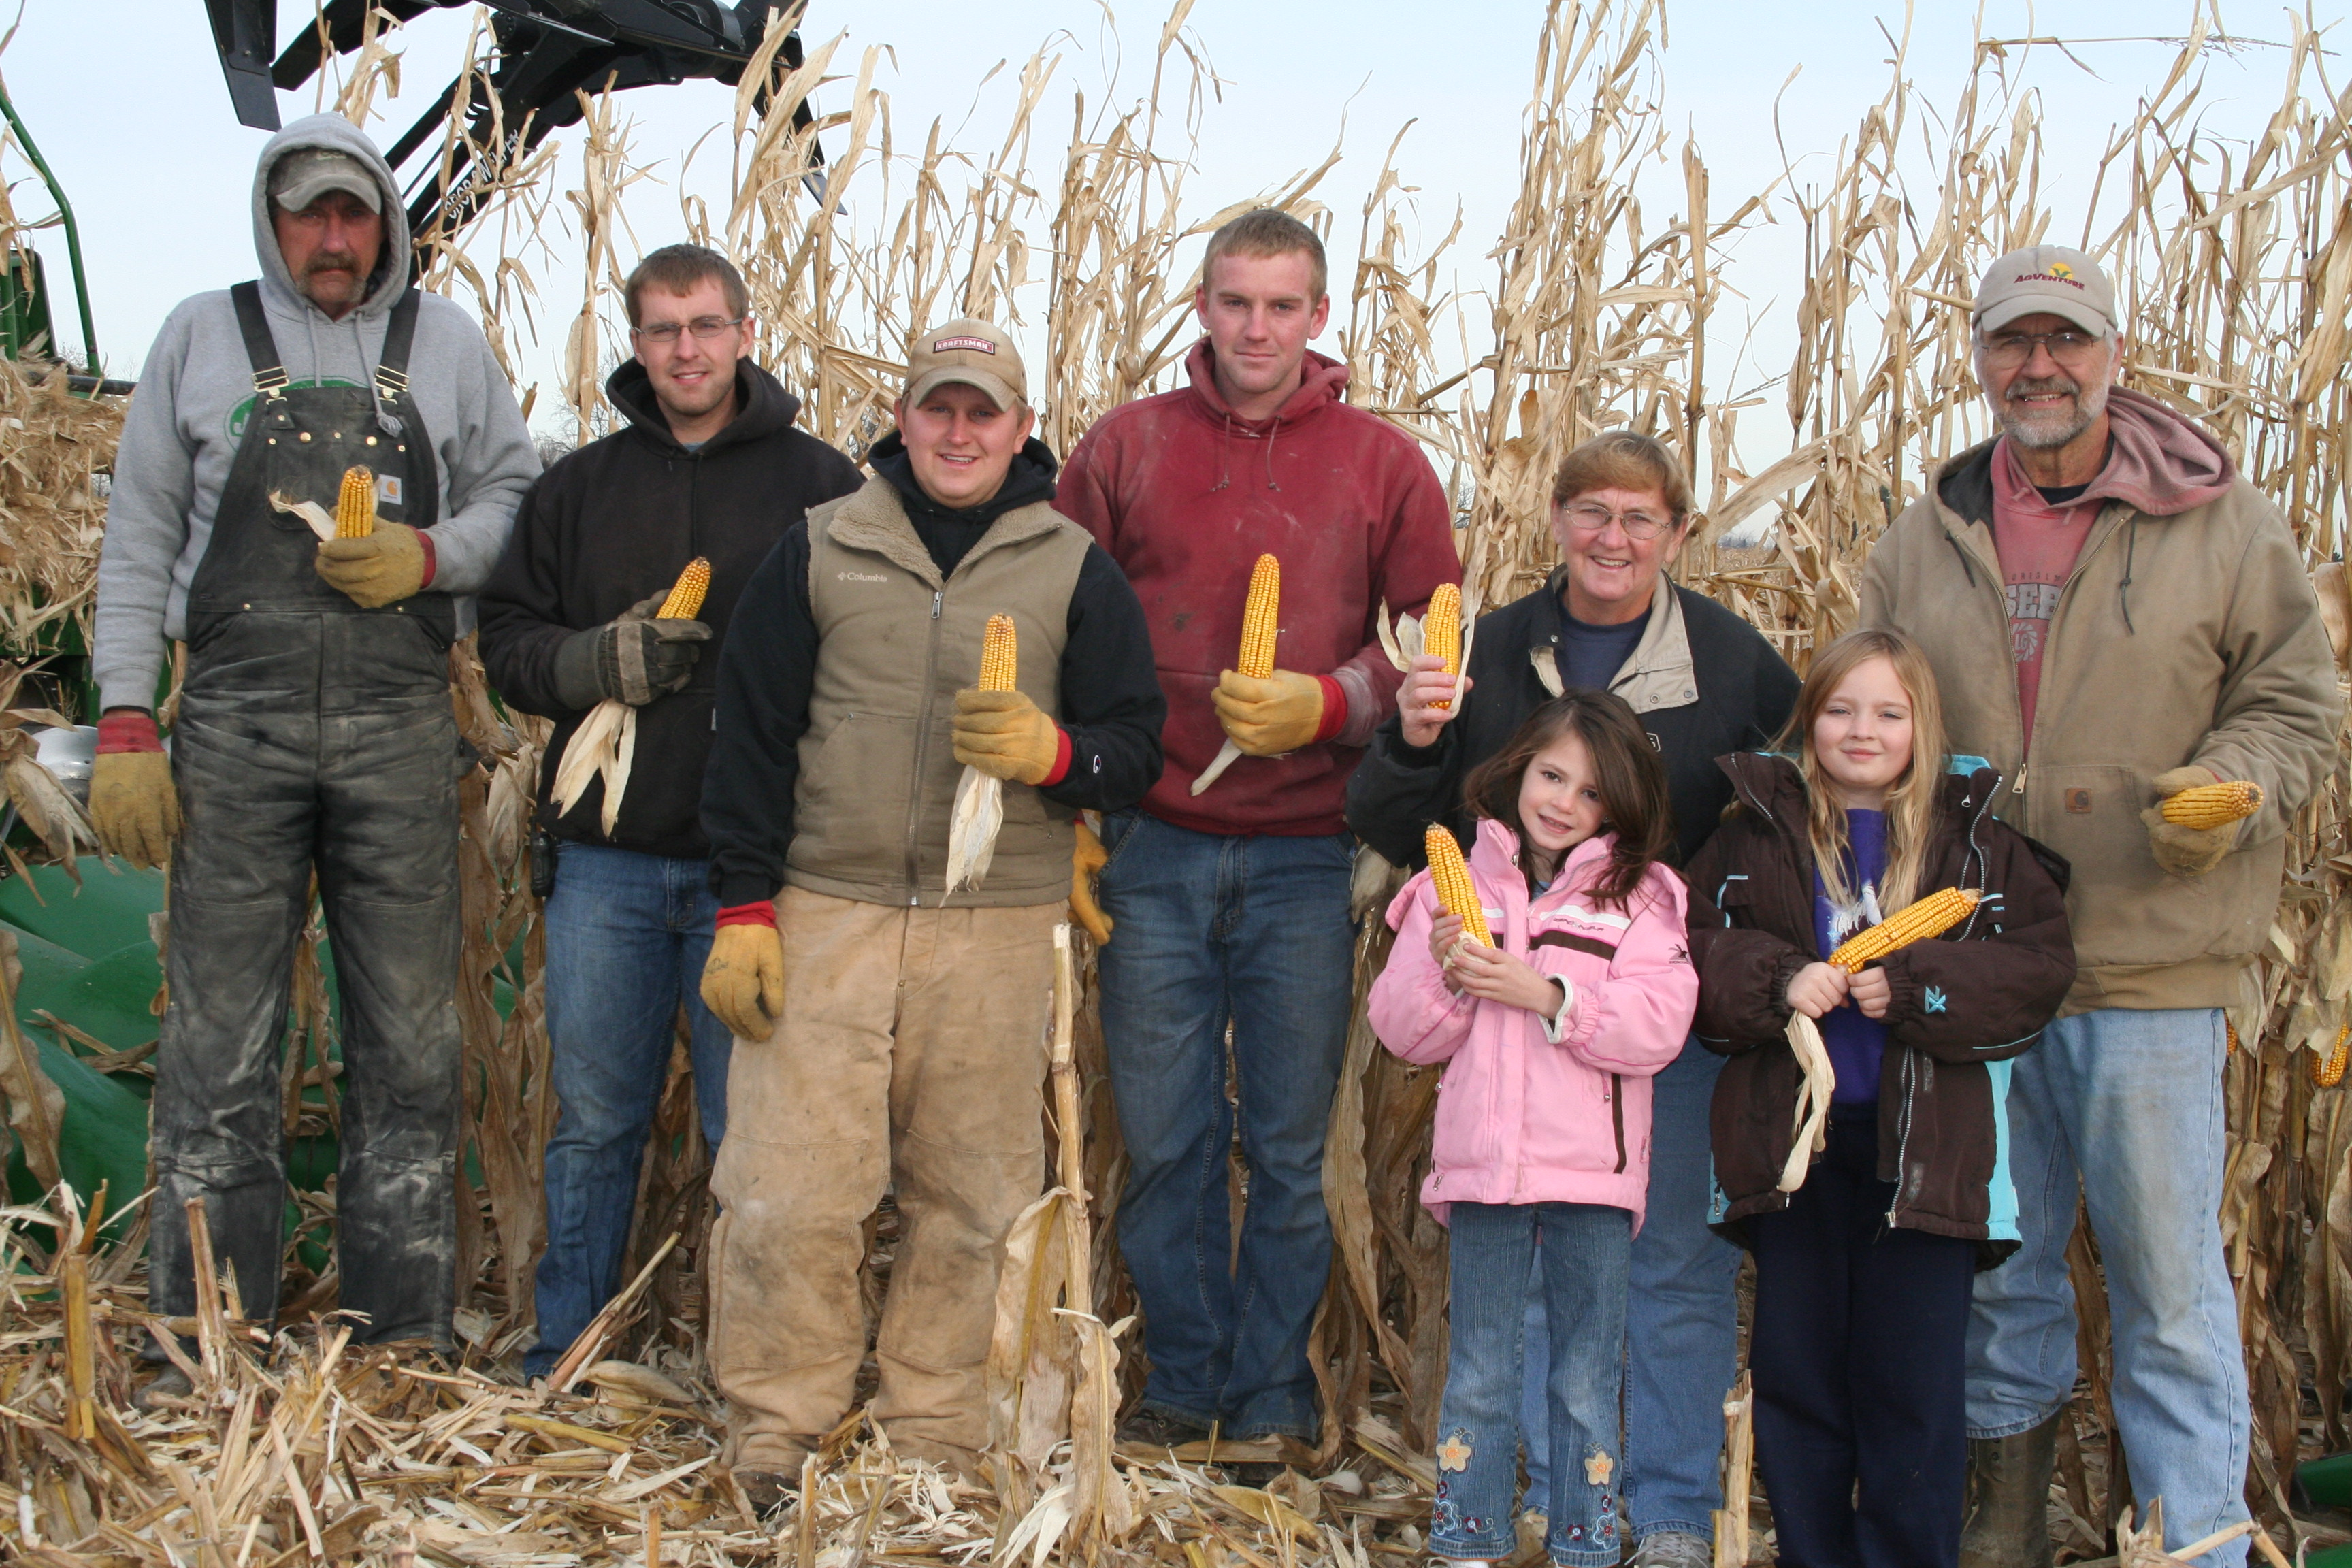 The harvest on Jerry and Bonnie Boldt's farm west of Davenport always ends with the hand-picking of the last of the corn crop in honor of deceased ancestors and others. This year's harvest took on special meaning, though, because the farm has now been in the Boldt family for 100 years. The hand-pickers this year were (l-r) Mike Fink, Jared Boldt, Jake Peeters, Jorden Boldt, Kaylee Wulf, Bonnie Boldt, Kylie Boldt and Jerry Boldt.